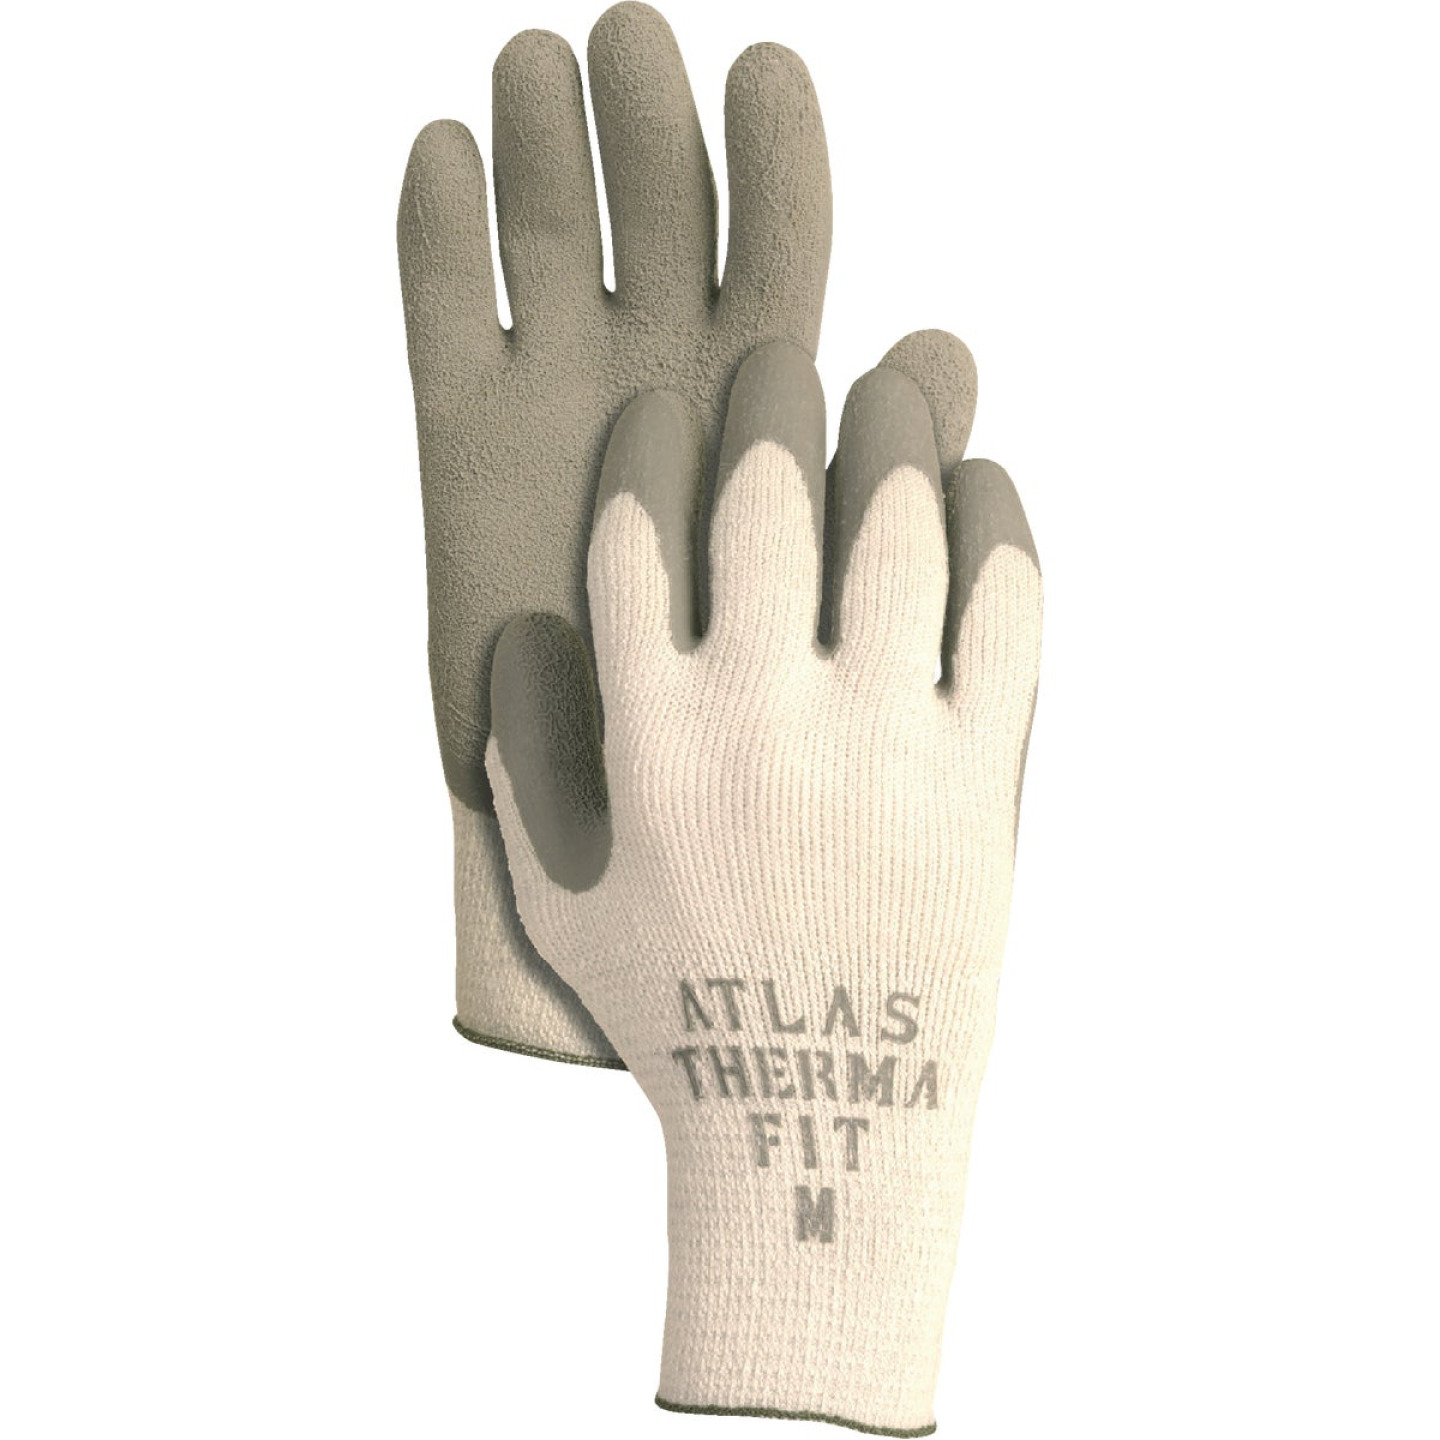 Atlas Therma-Fit Men's Small Latex-Dipped Knit Winter Glove Image 1